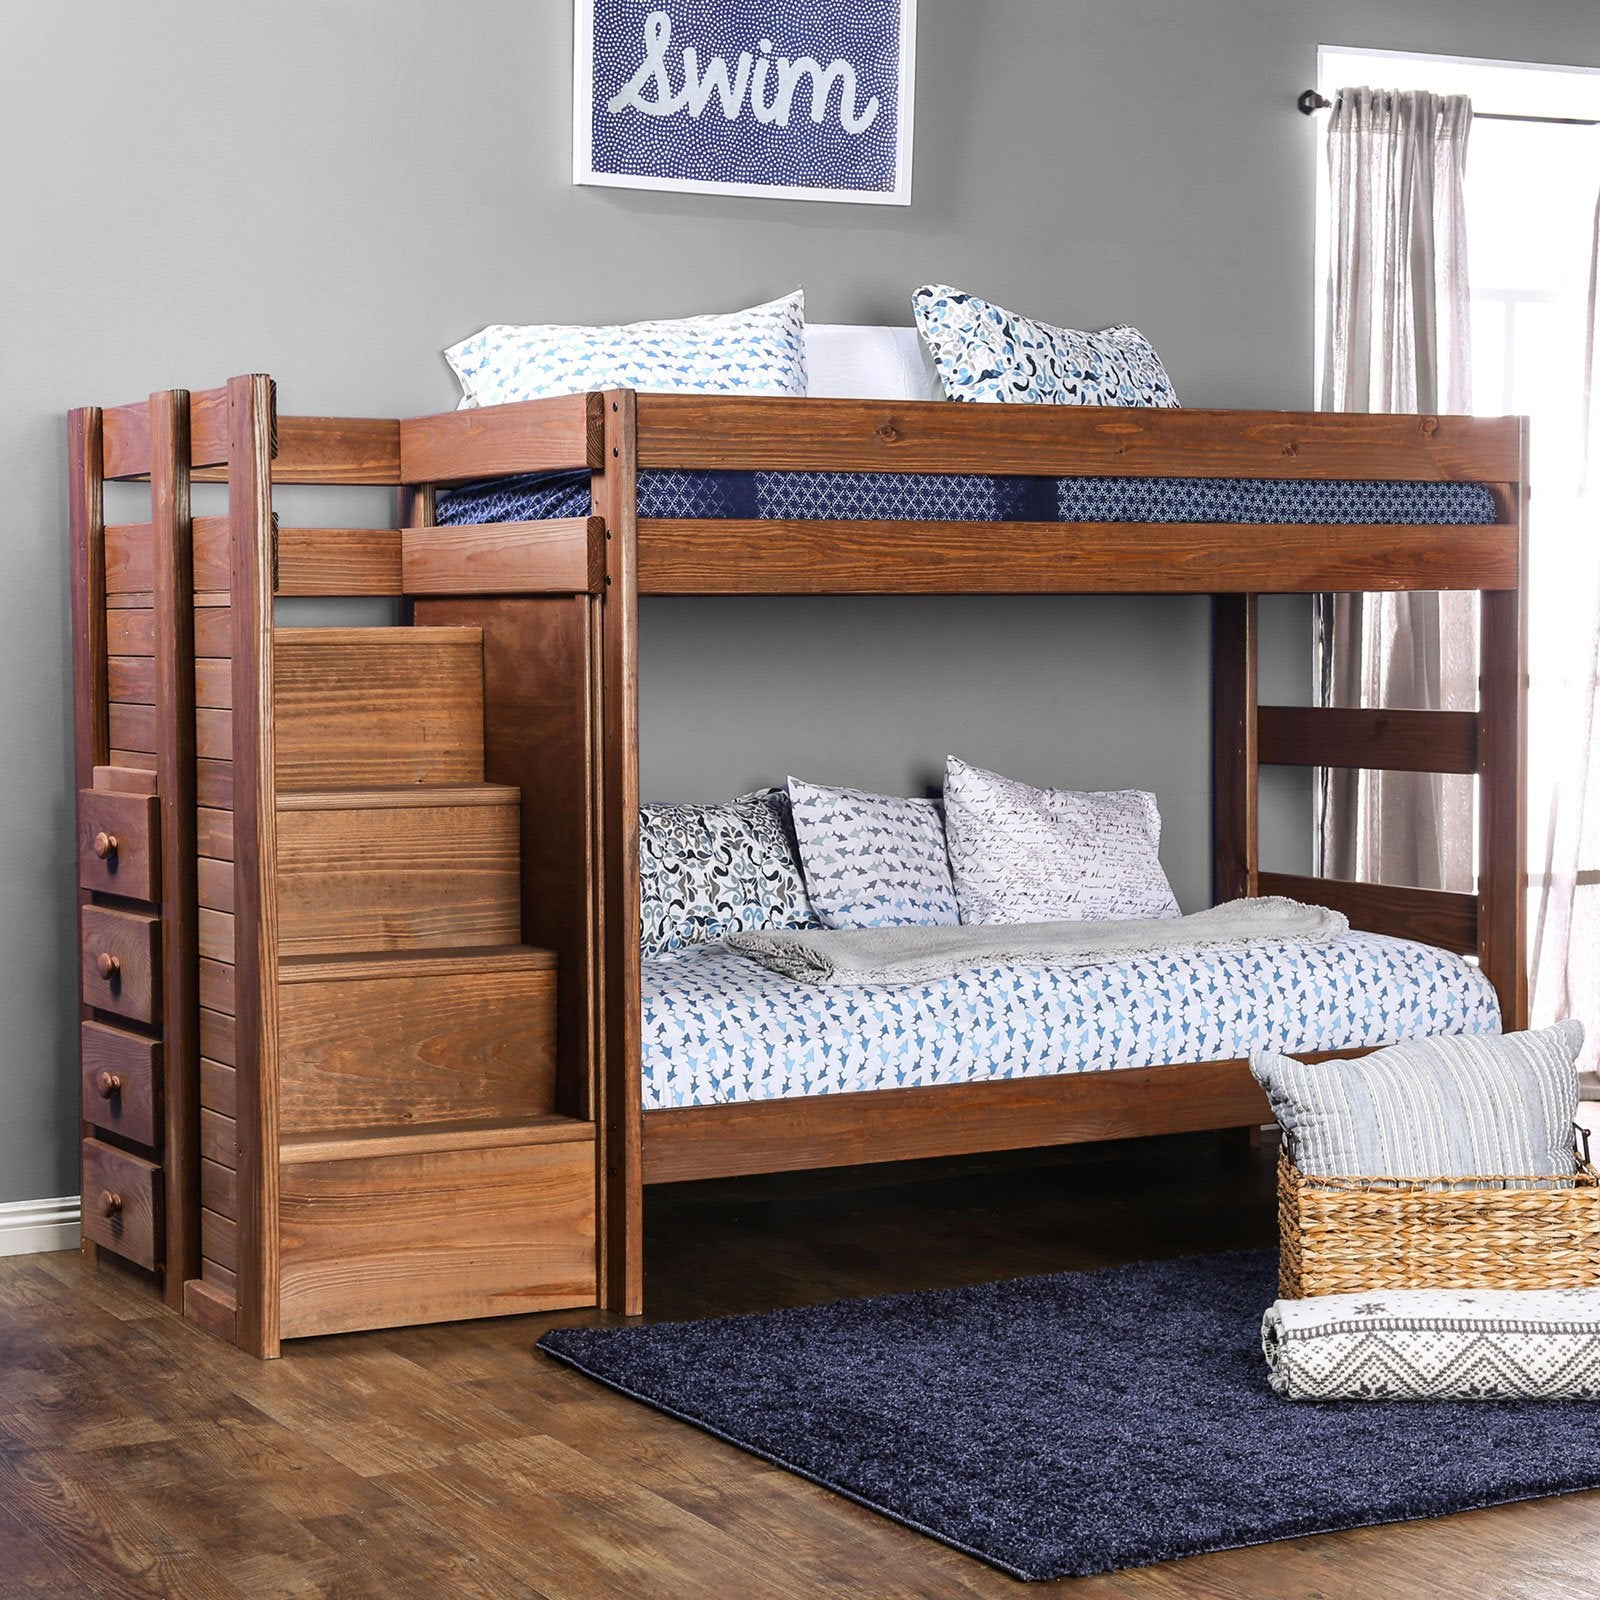 Ampelios T-T Bunk Bed w- 2 Slat Kits (*Mattress Ready) - InteriorDesignsToGo.com